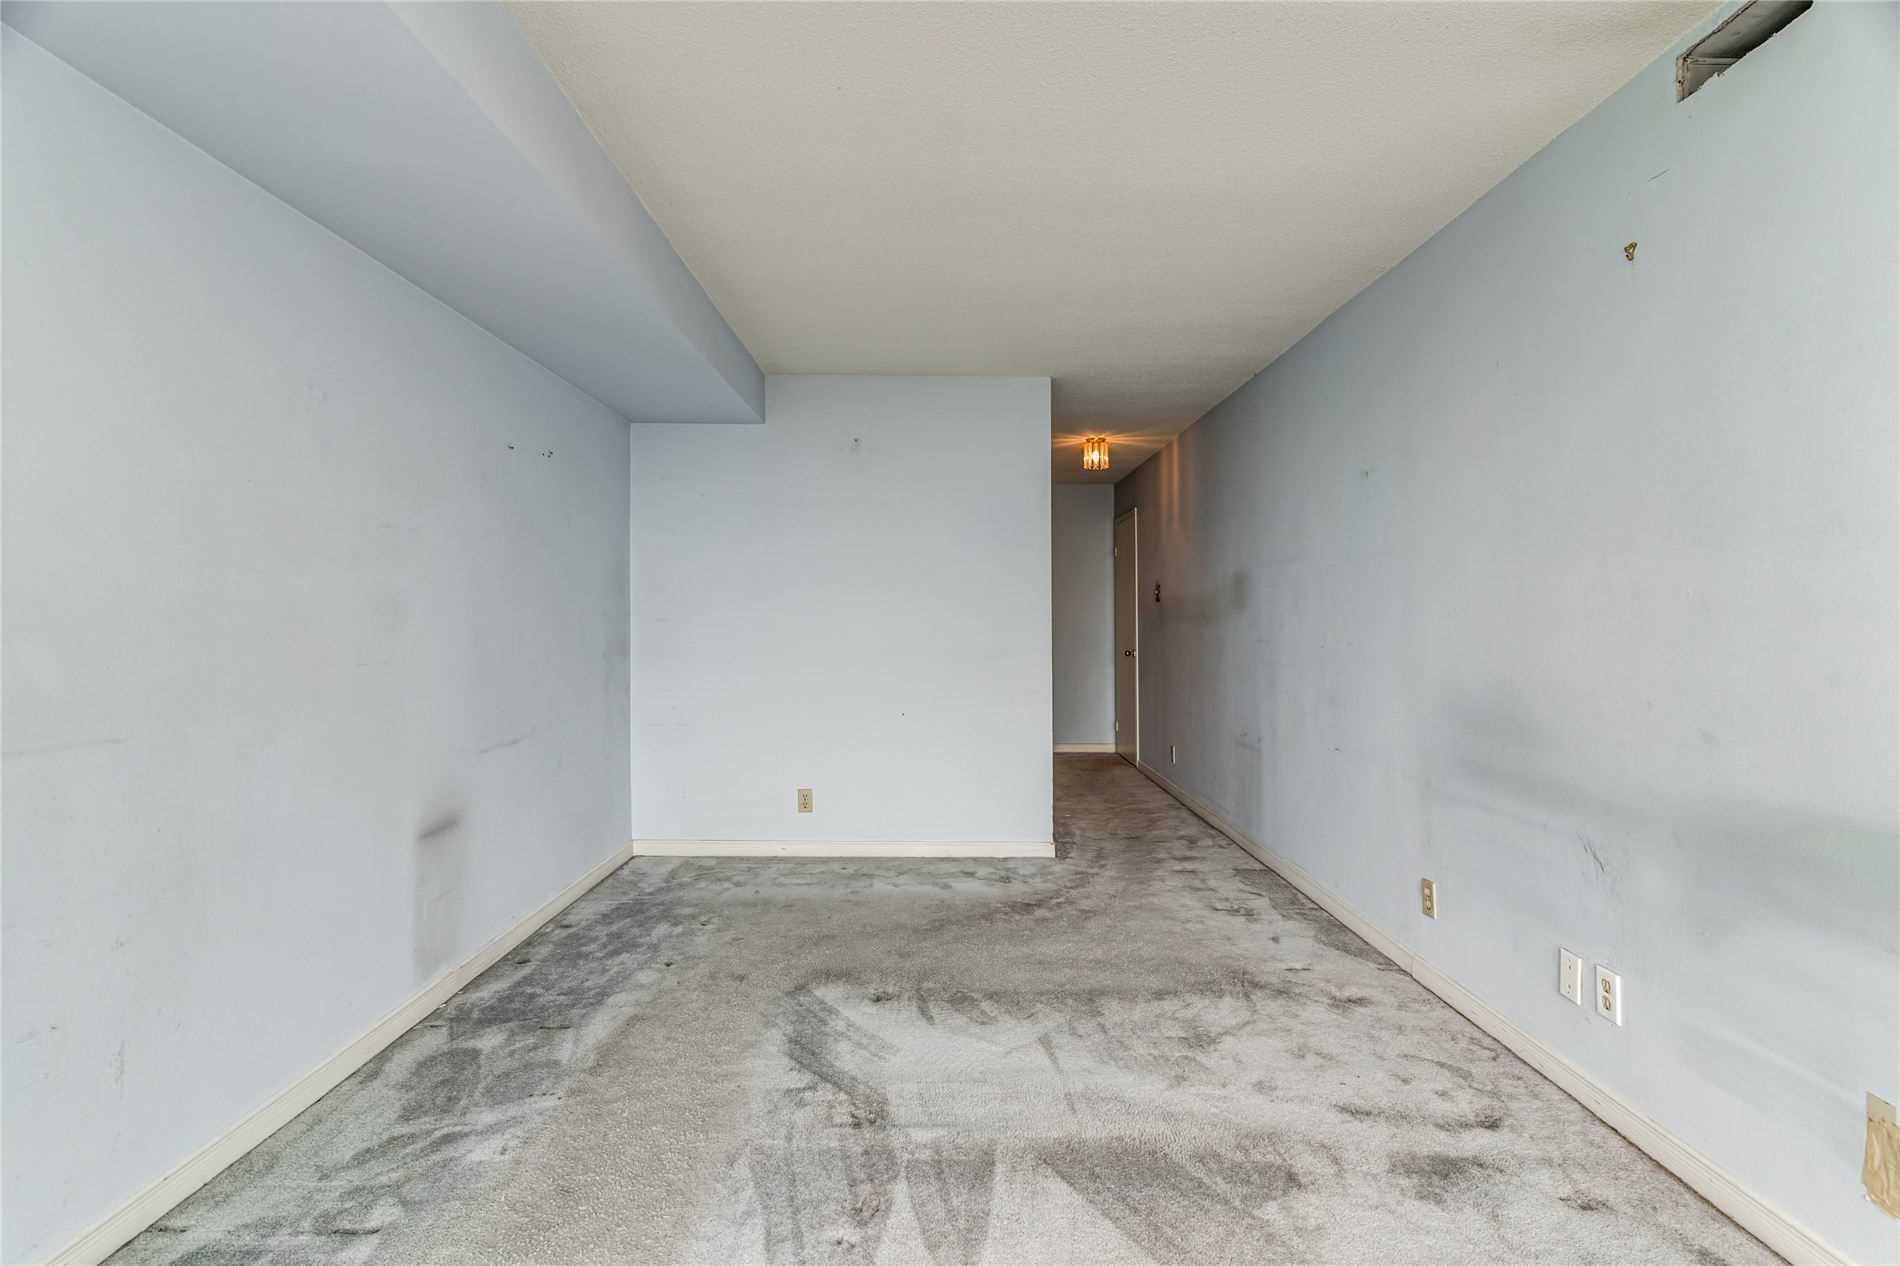 Image 30 of 40 showing inside of 2 Bedroom Condo Apt Apartment for Sale at 1665 Pickering Pkwy Unit# 812, Pickering L1V6L4